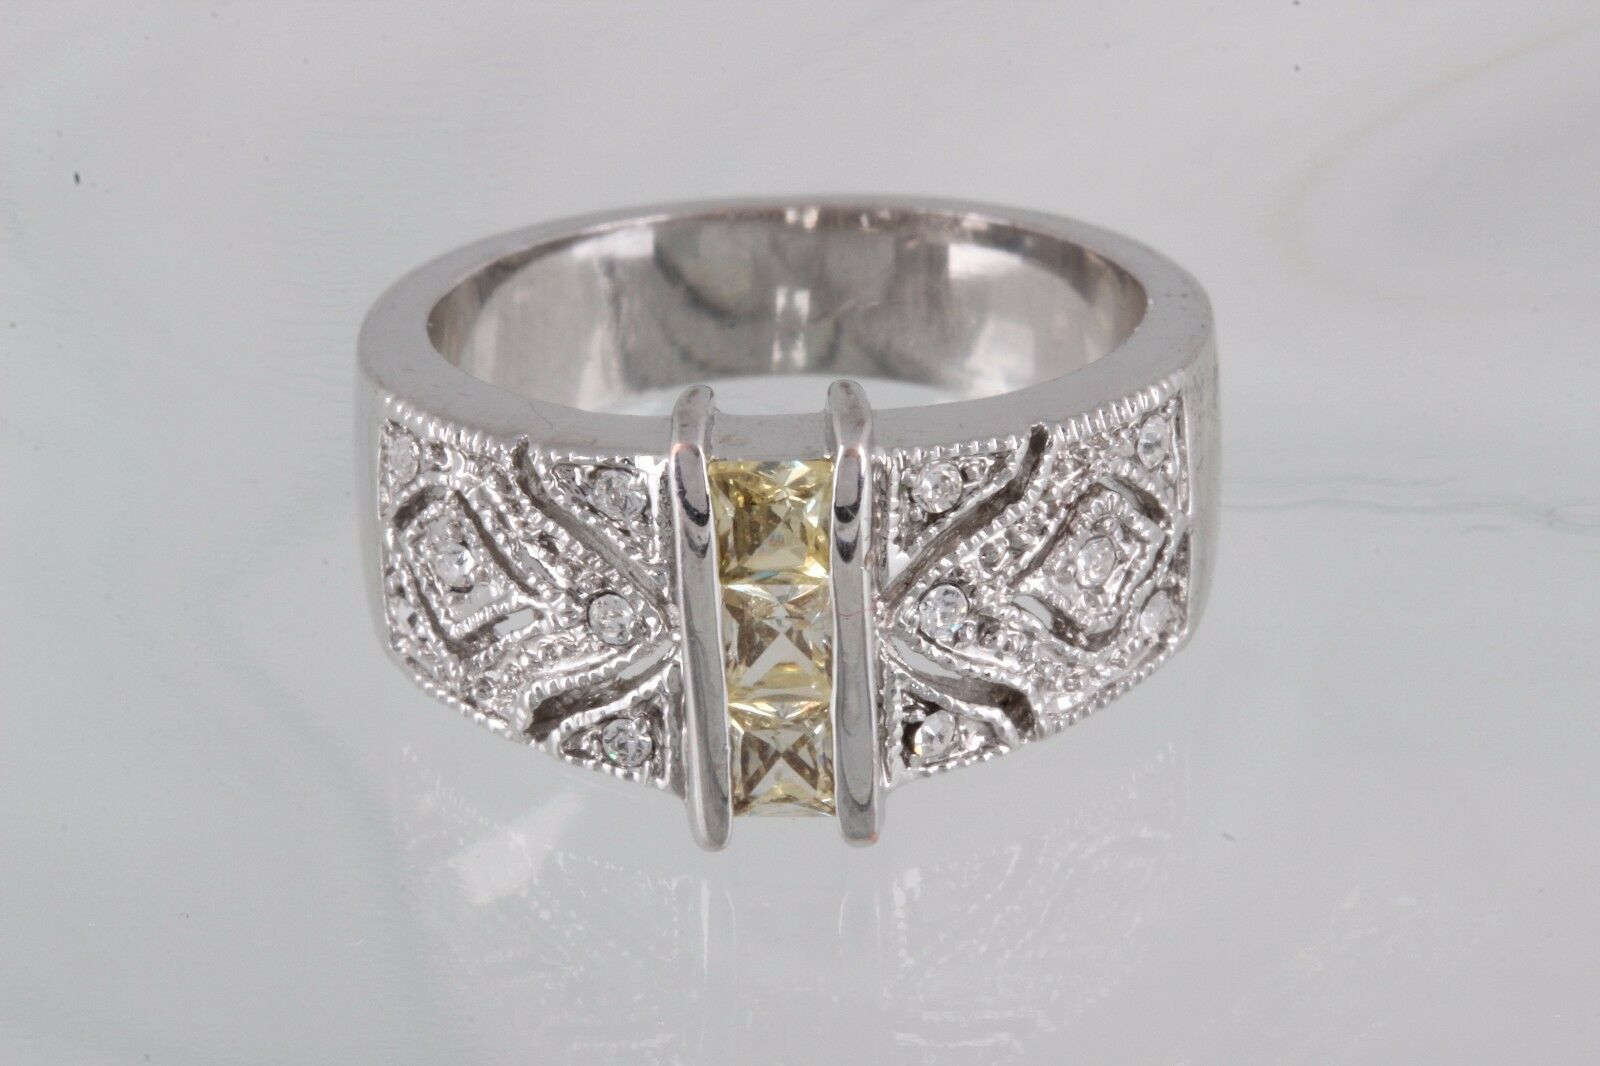 COSTUME YELLOW & CLEAR STONES RING SIZE ____ FASHION